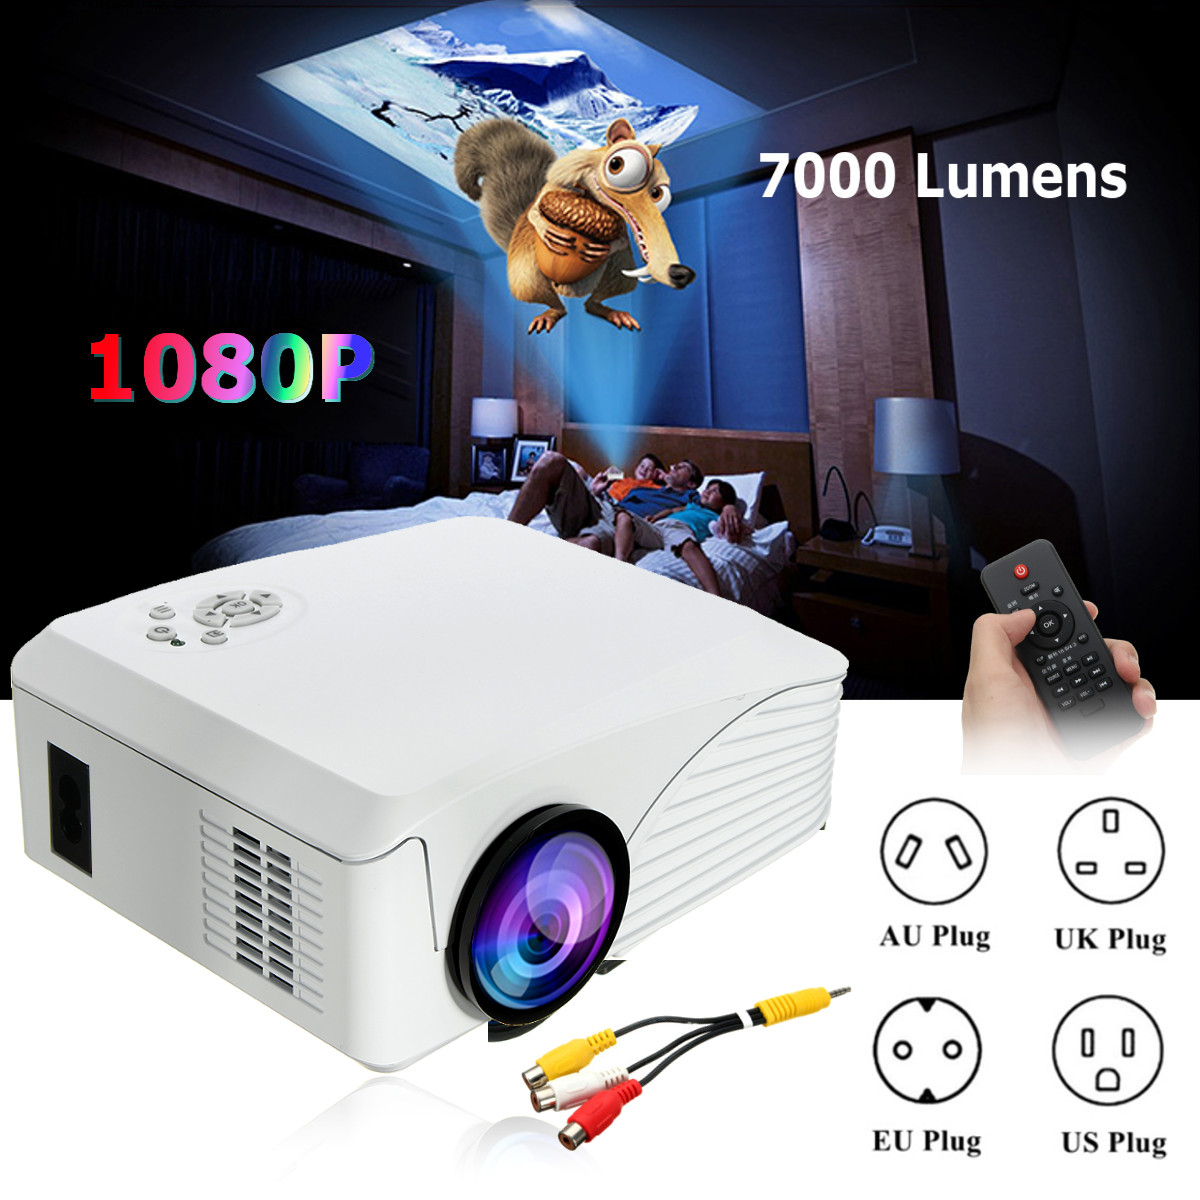 Portable 7000 Lumens HD 1080P 3D Multimedia Projector LED Home Theater USB With US Plug